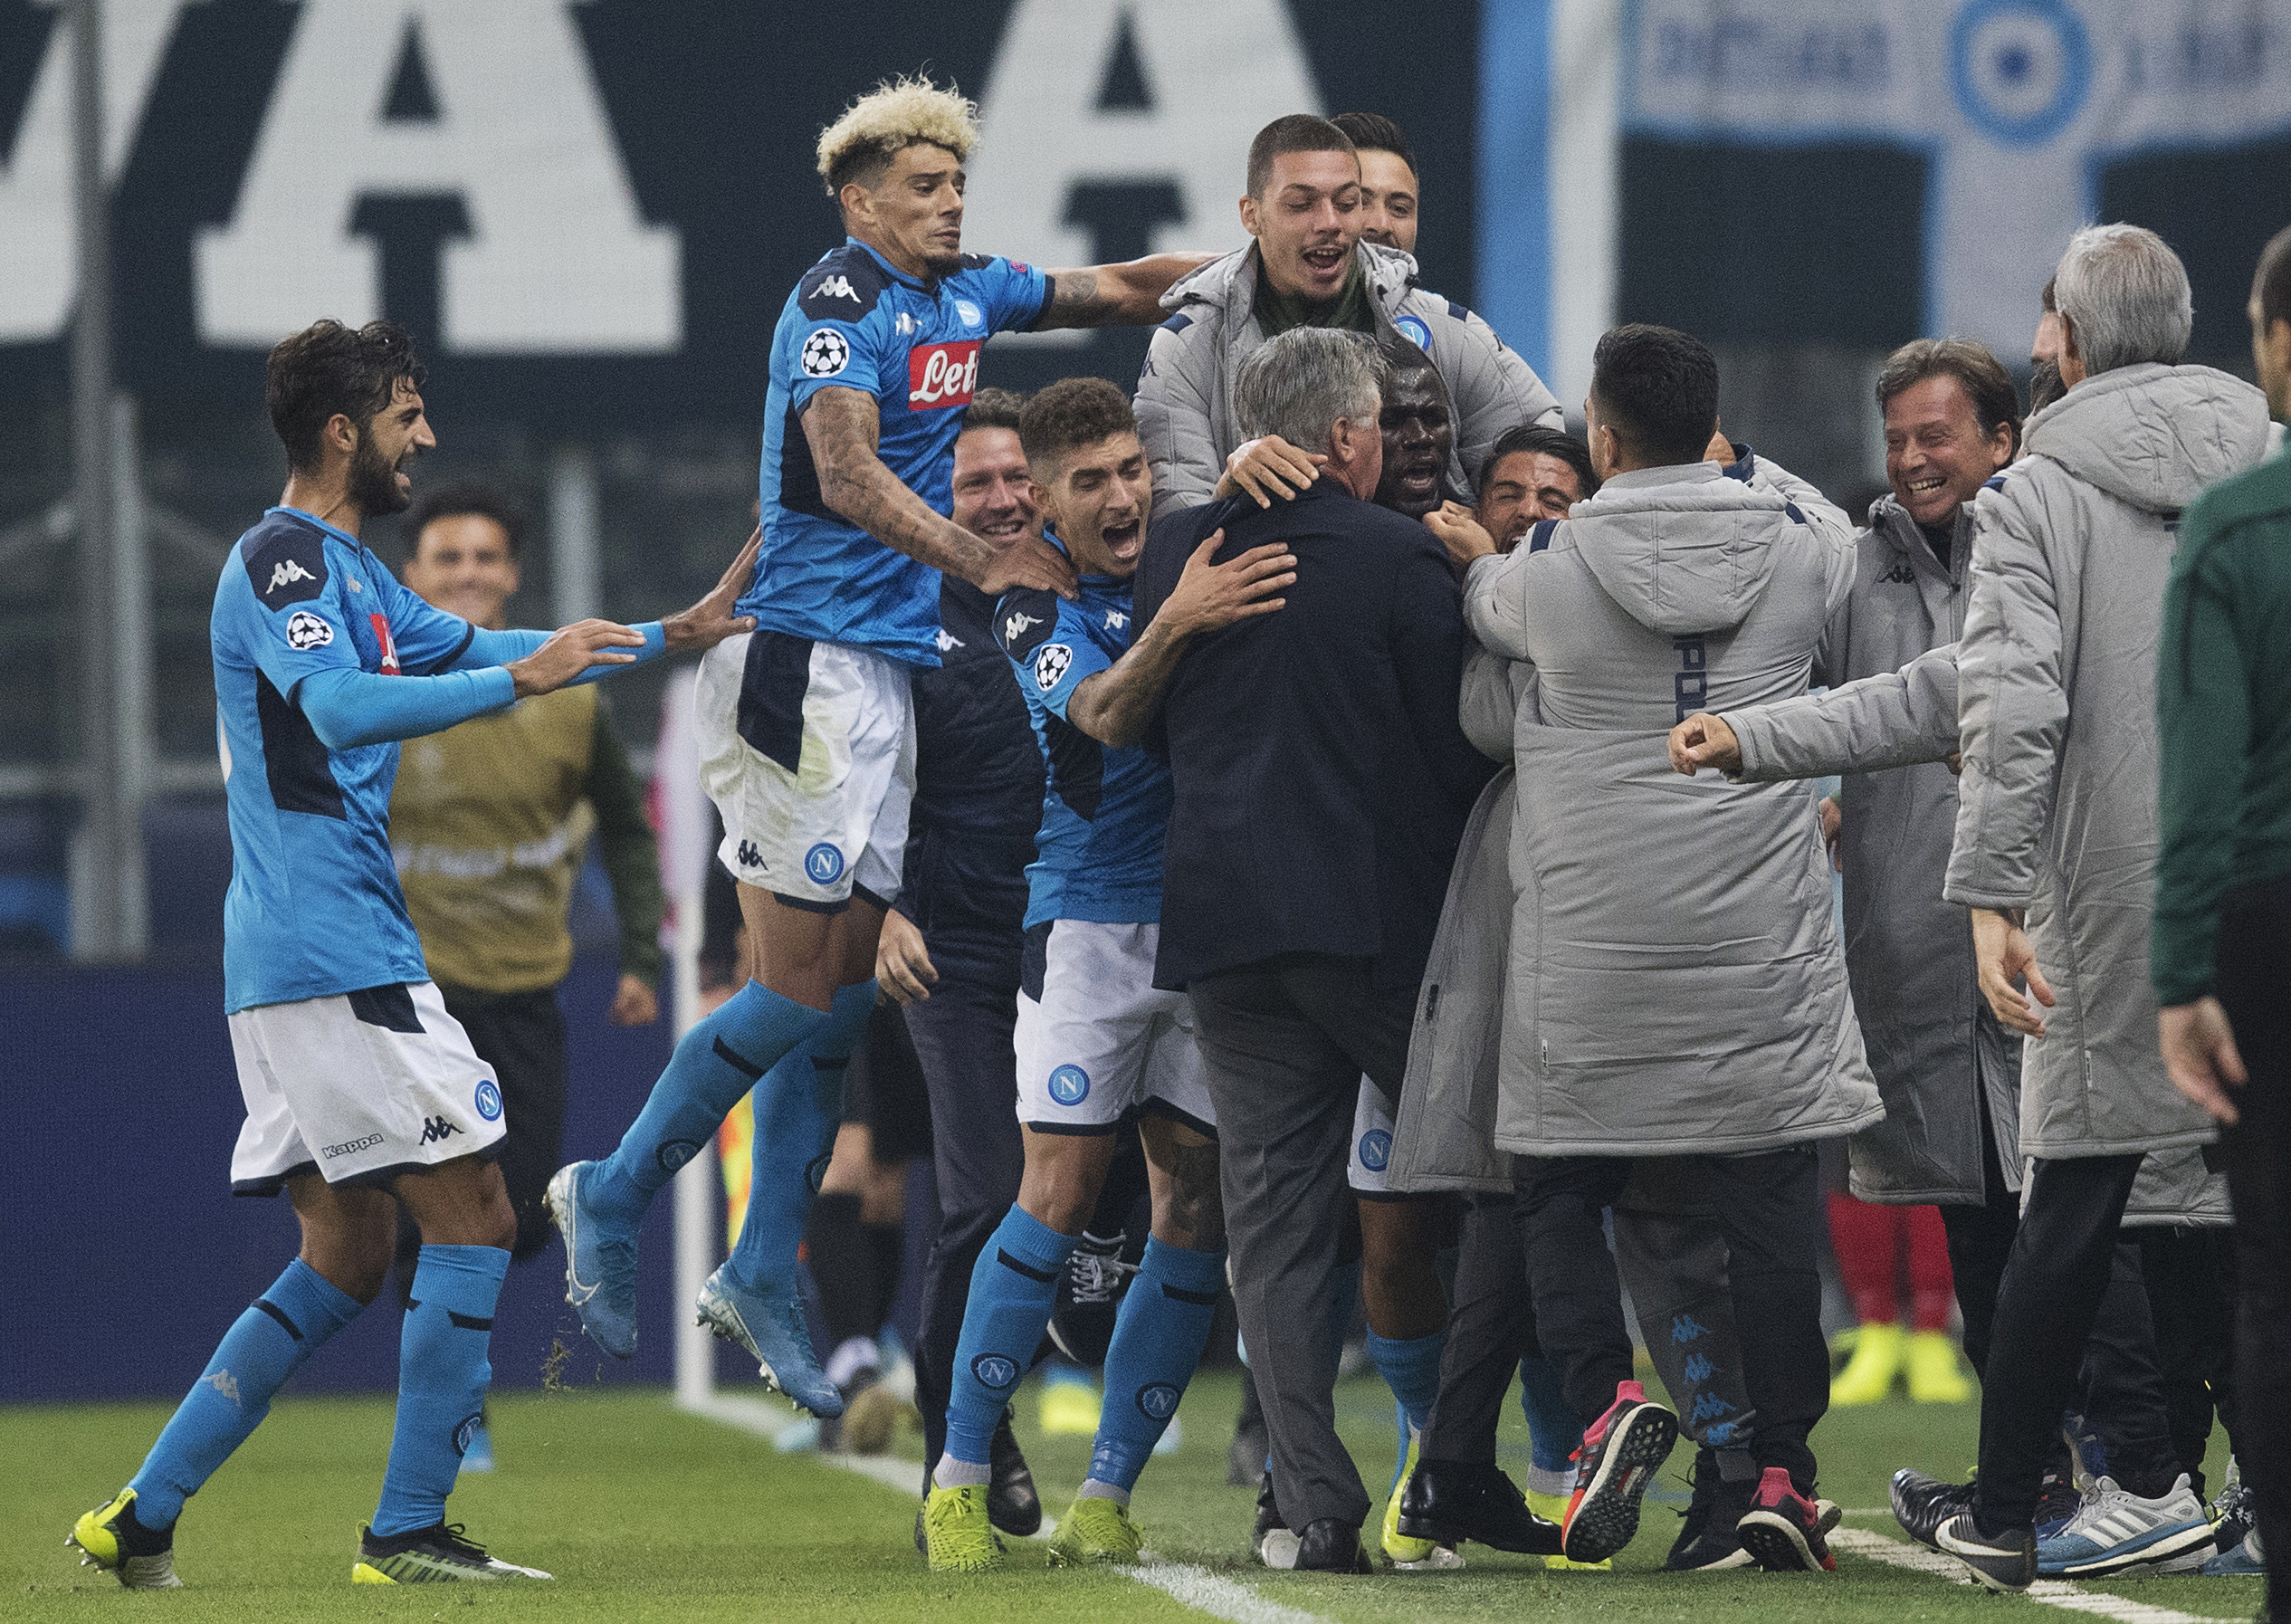 Napoli players celebrate the winning goal against Salzburg.